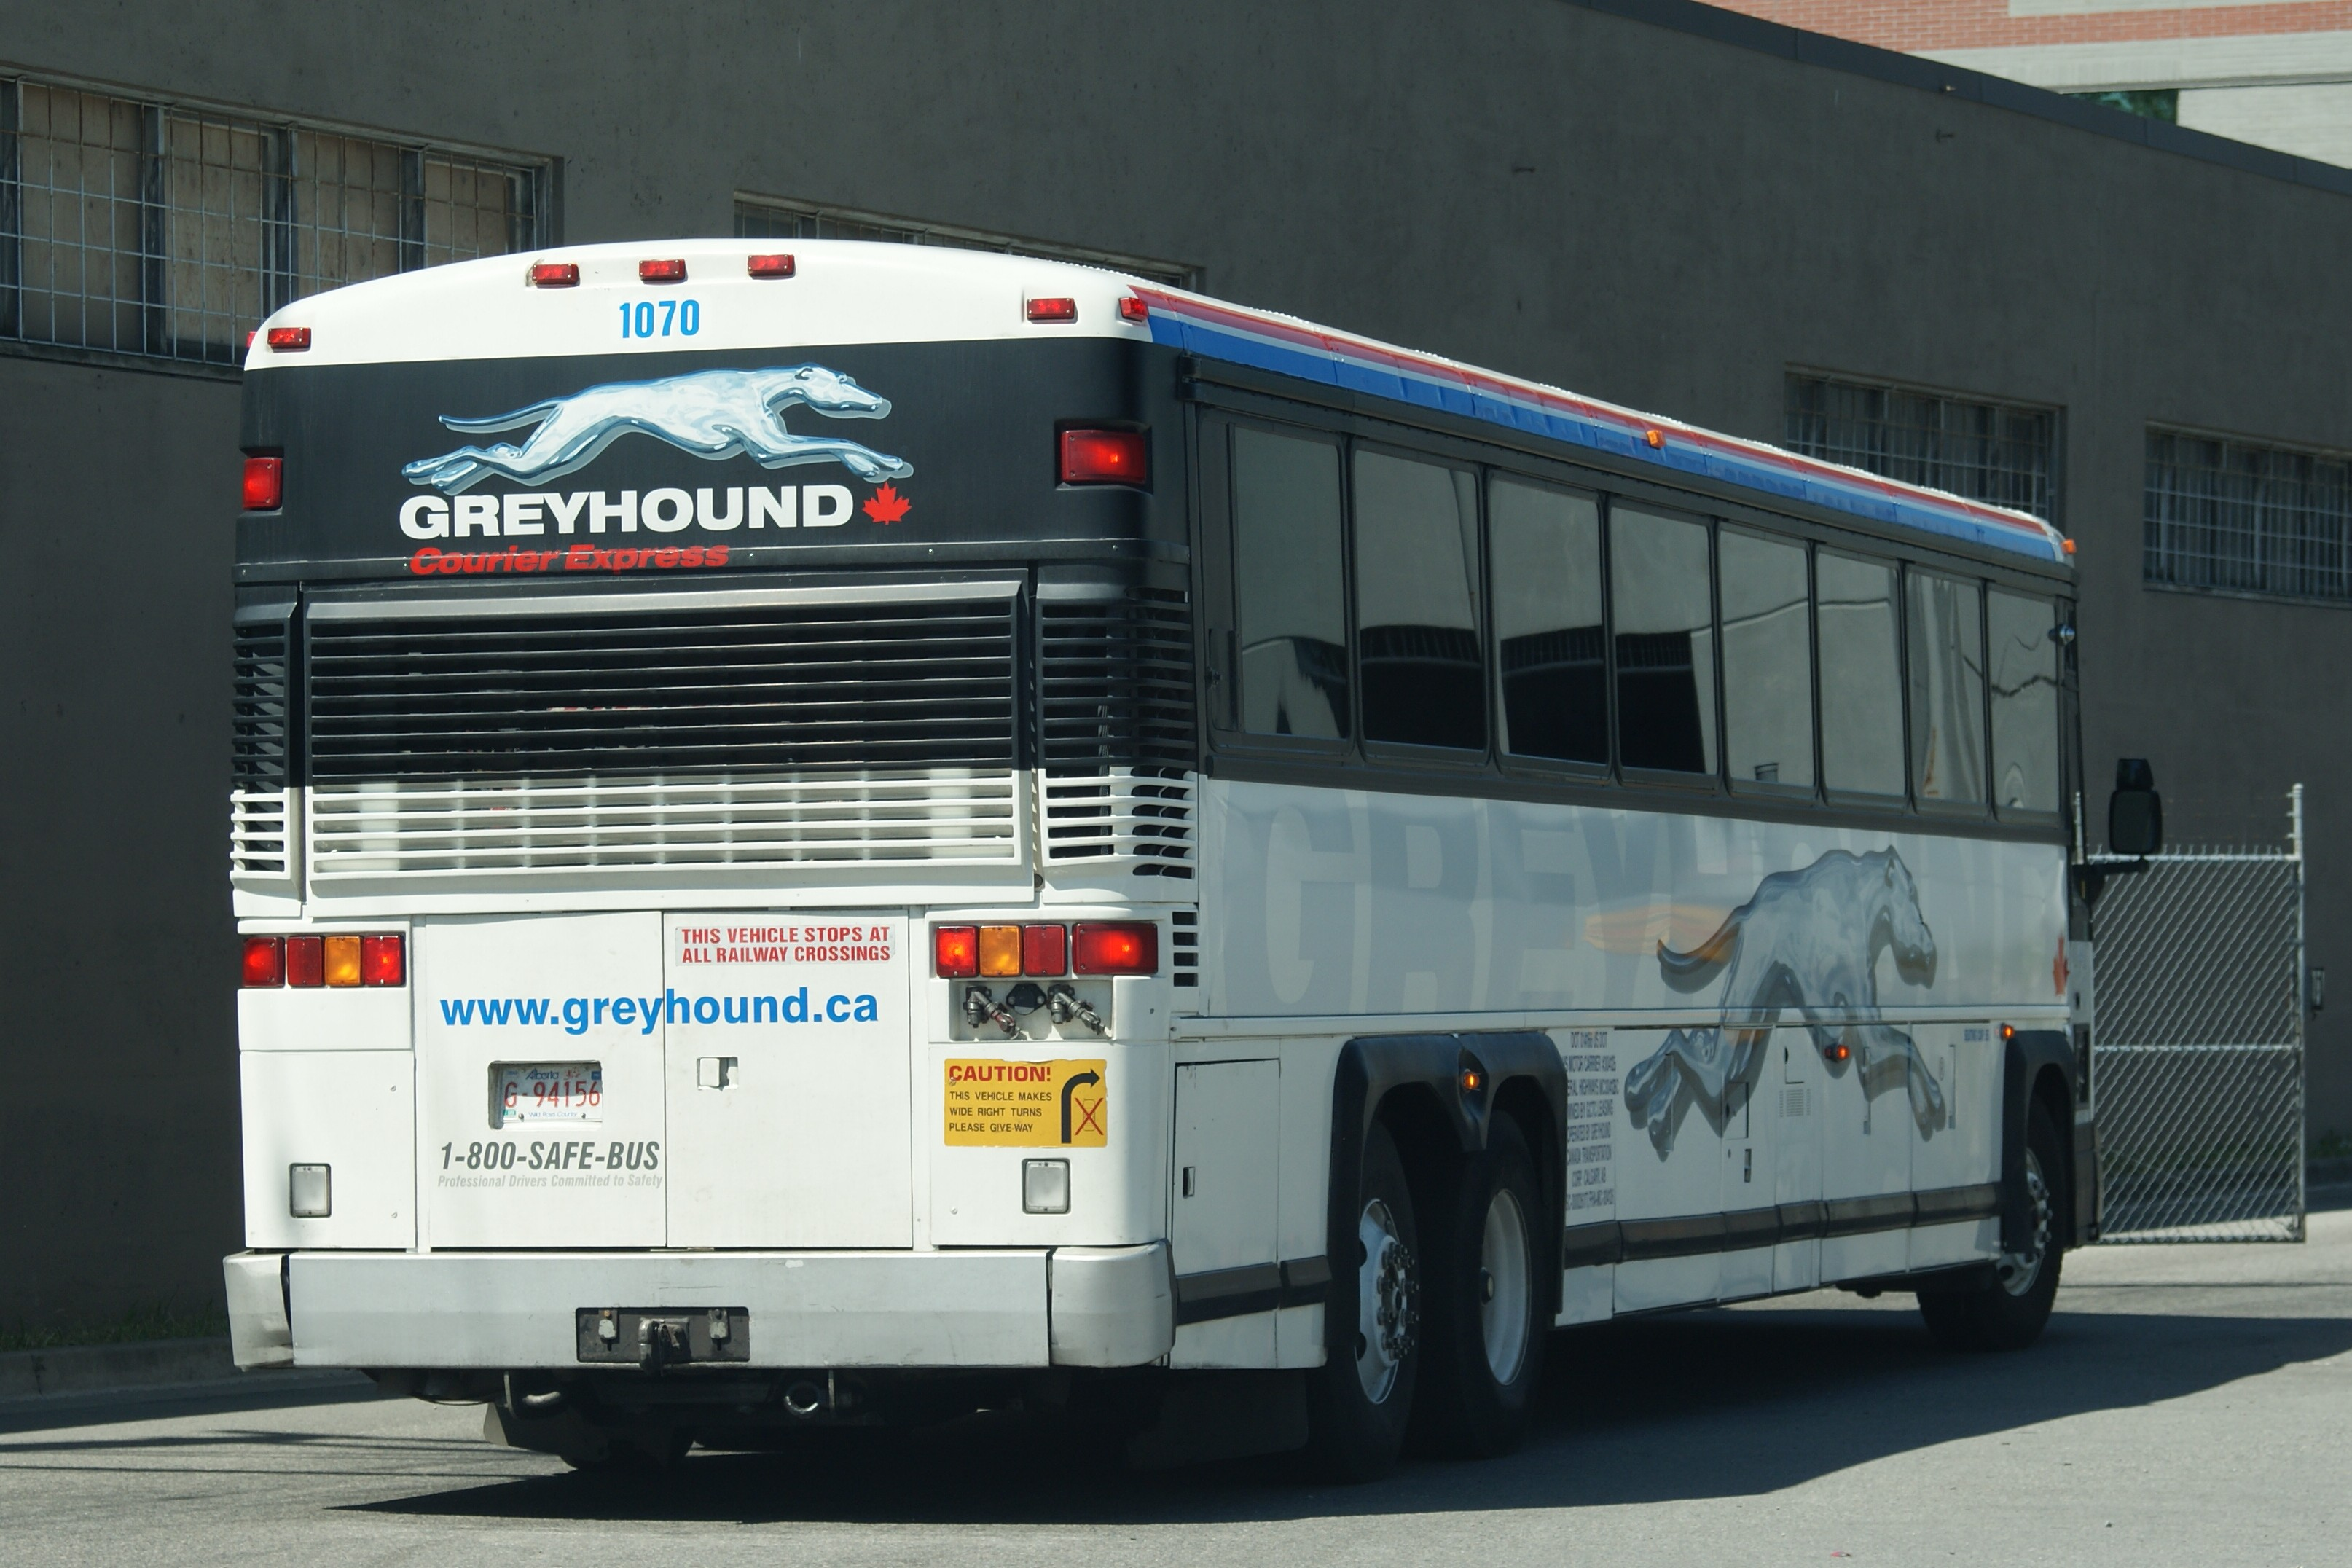 Greyhound number toronto : Jny com